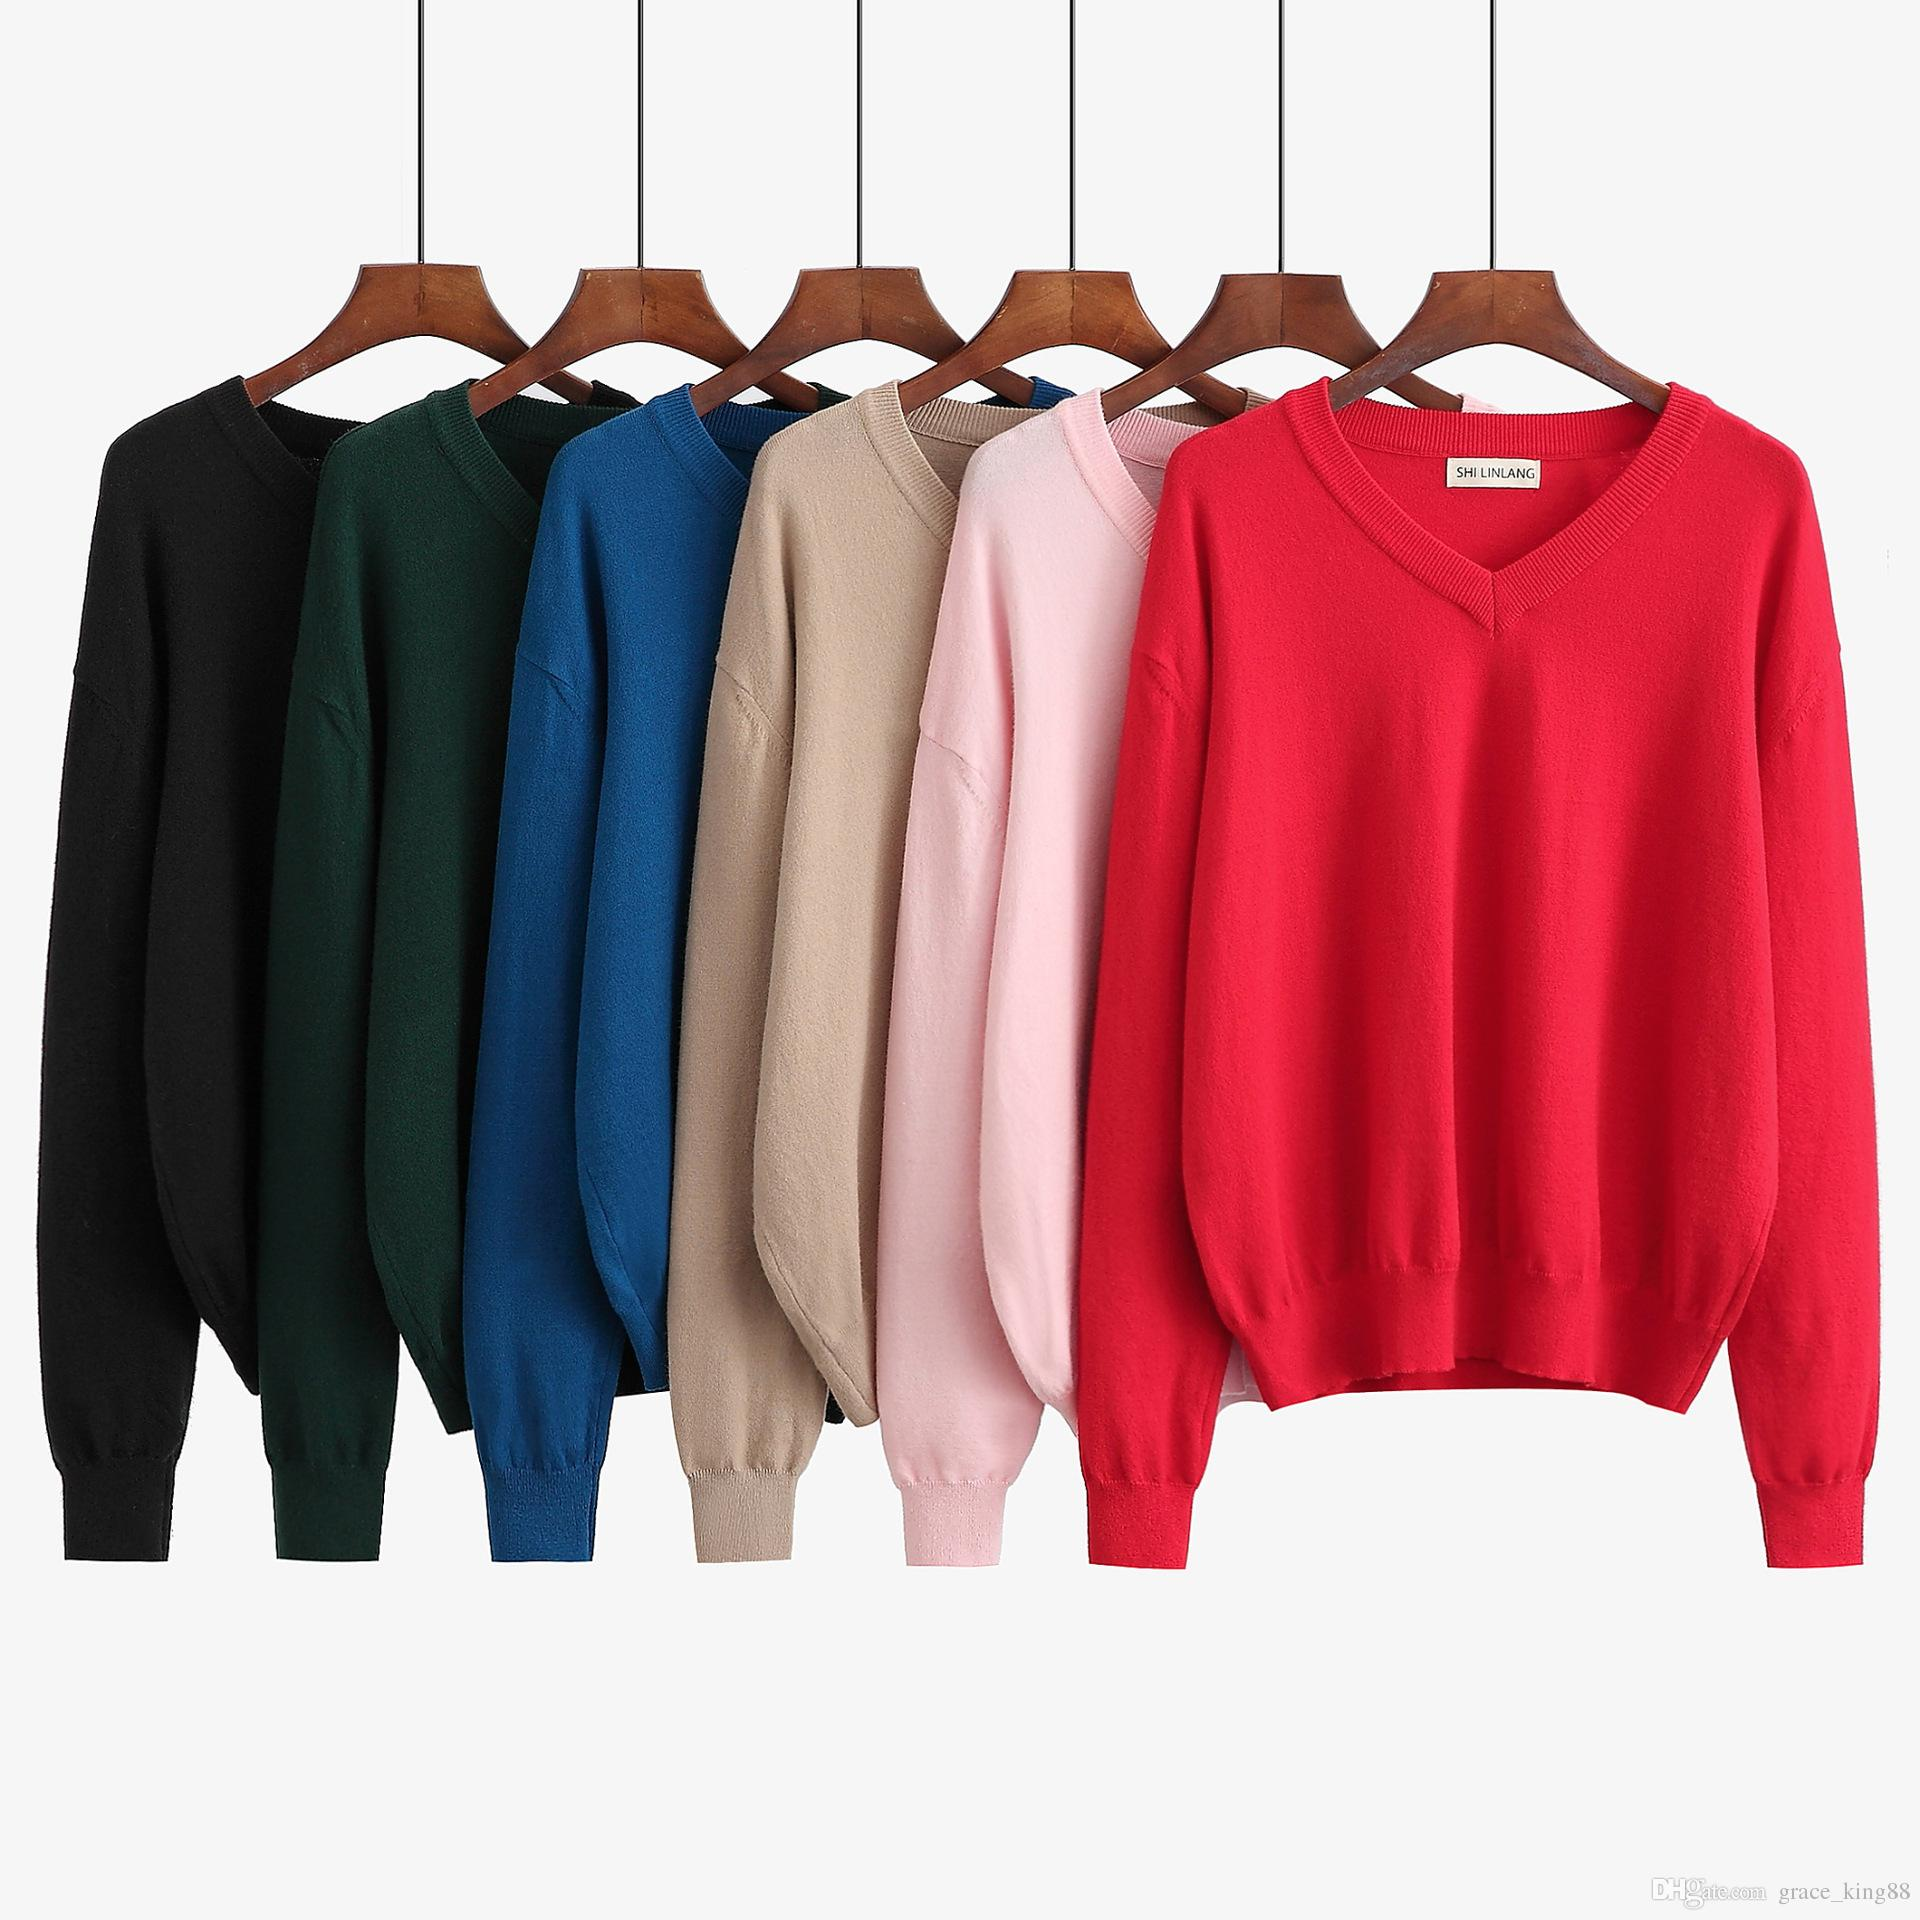 3088c076866e87 2019 2018Autumn Winter New Women S Sweater Loose Long Sleeve V Neck Sweater  Knitwear Plus Size Fashion Pullover Knit Sweater M XL From Grace king88